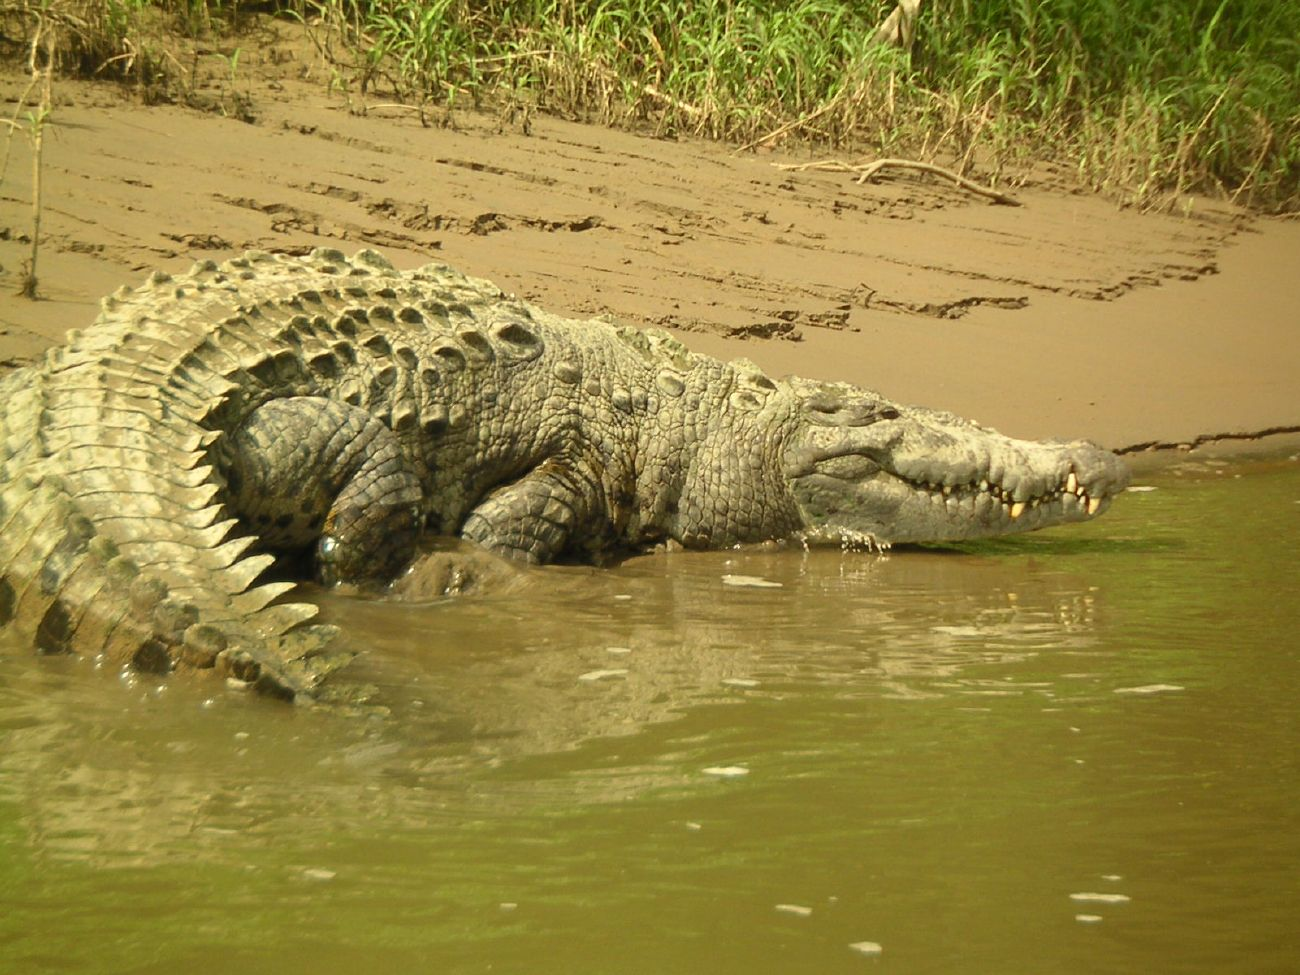 costa rica crocodile attacks